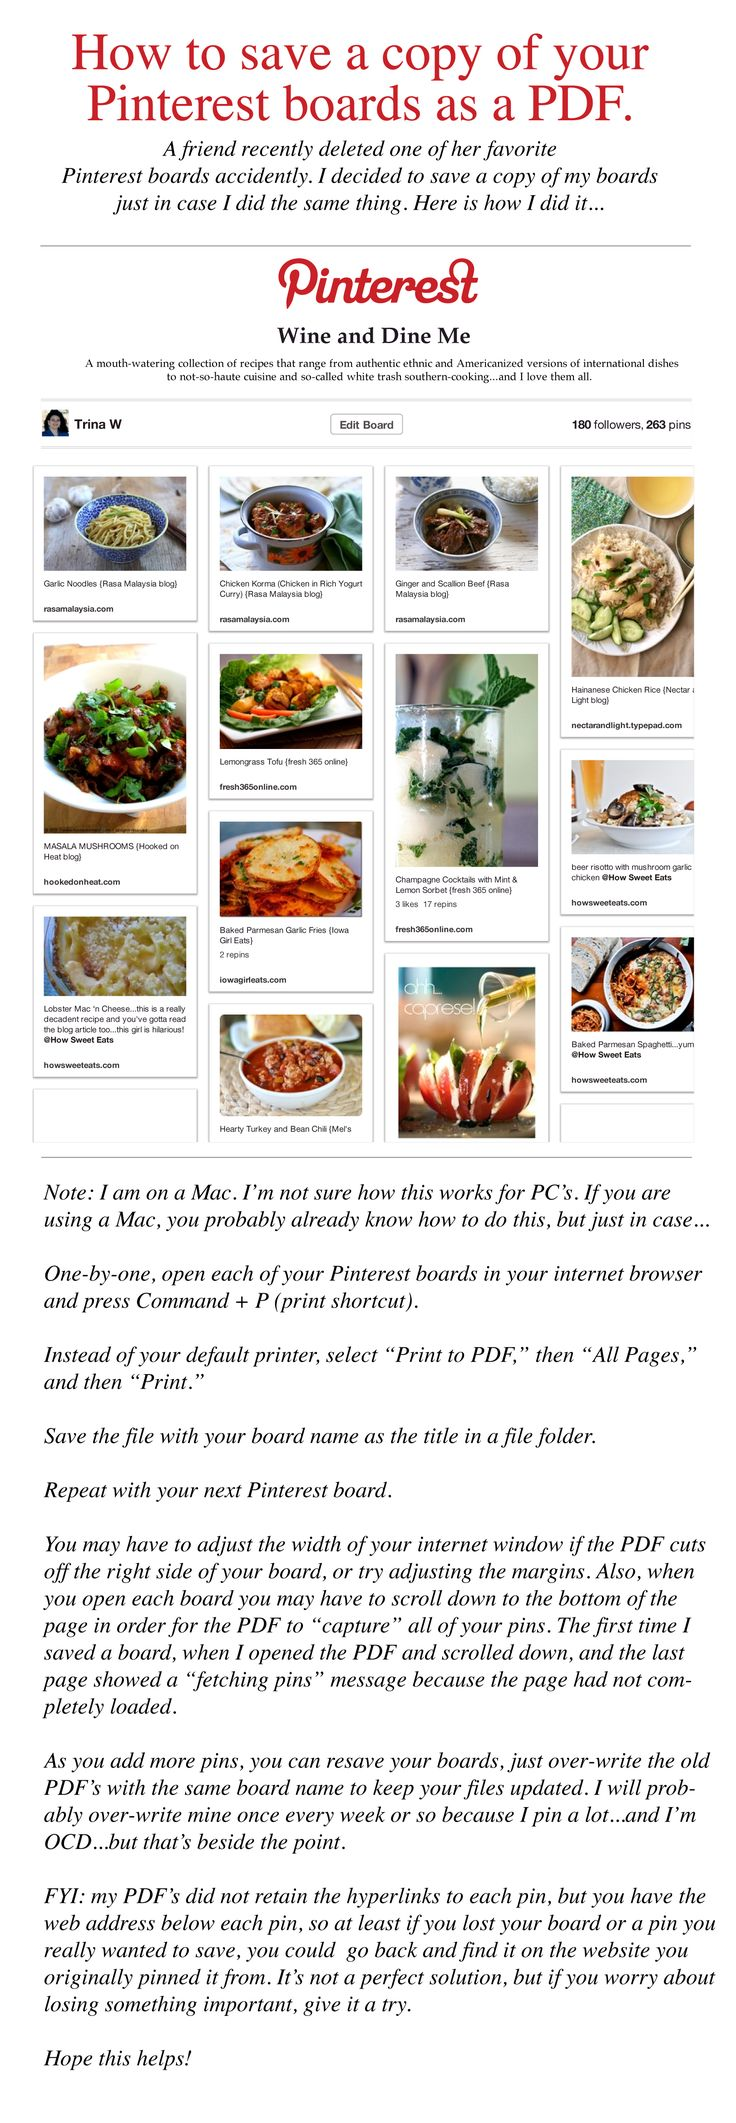 How to save a copy of your Pinterest boards as a PDF.  This is truly helpful information. While written with Mac users in mind, if you have a PC and any PDF writer on your system, the directions to 'print to PDF' are the same. #Pinterest #save #boards #PDF